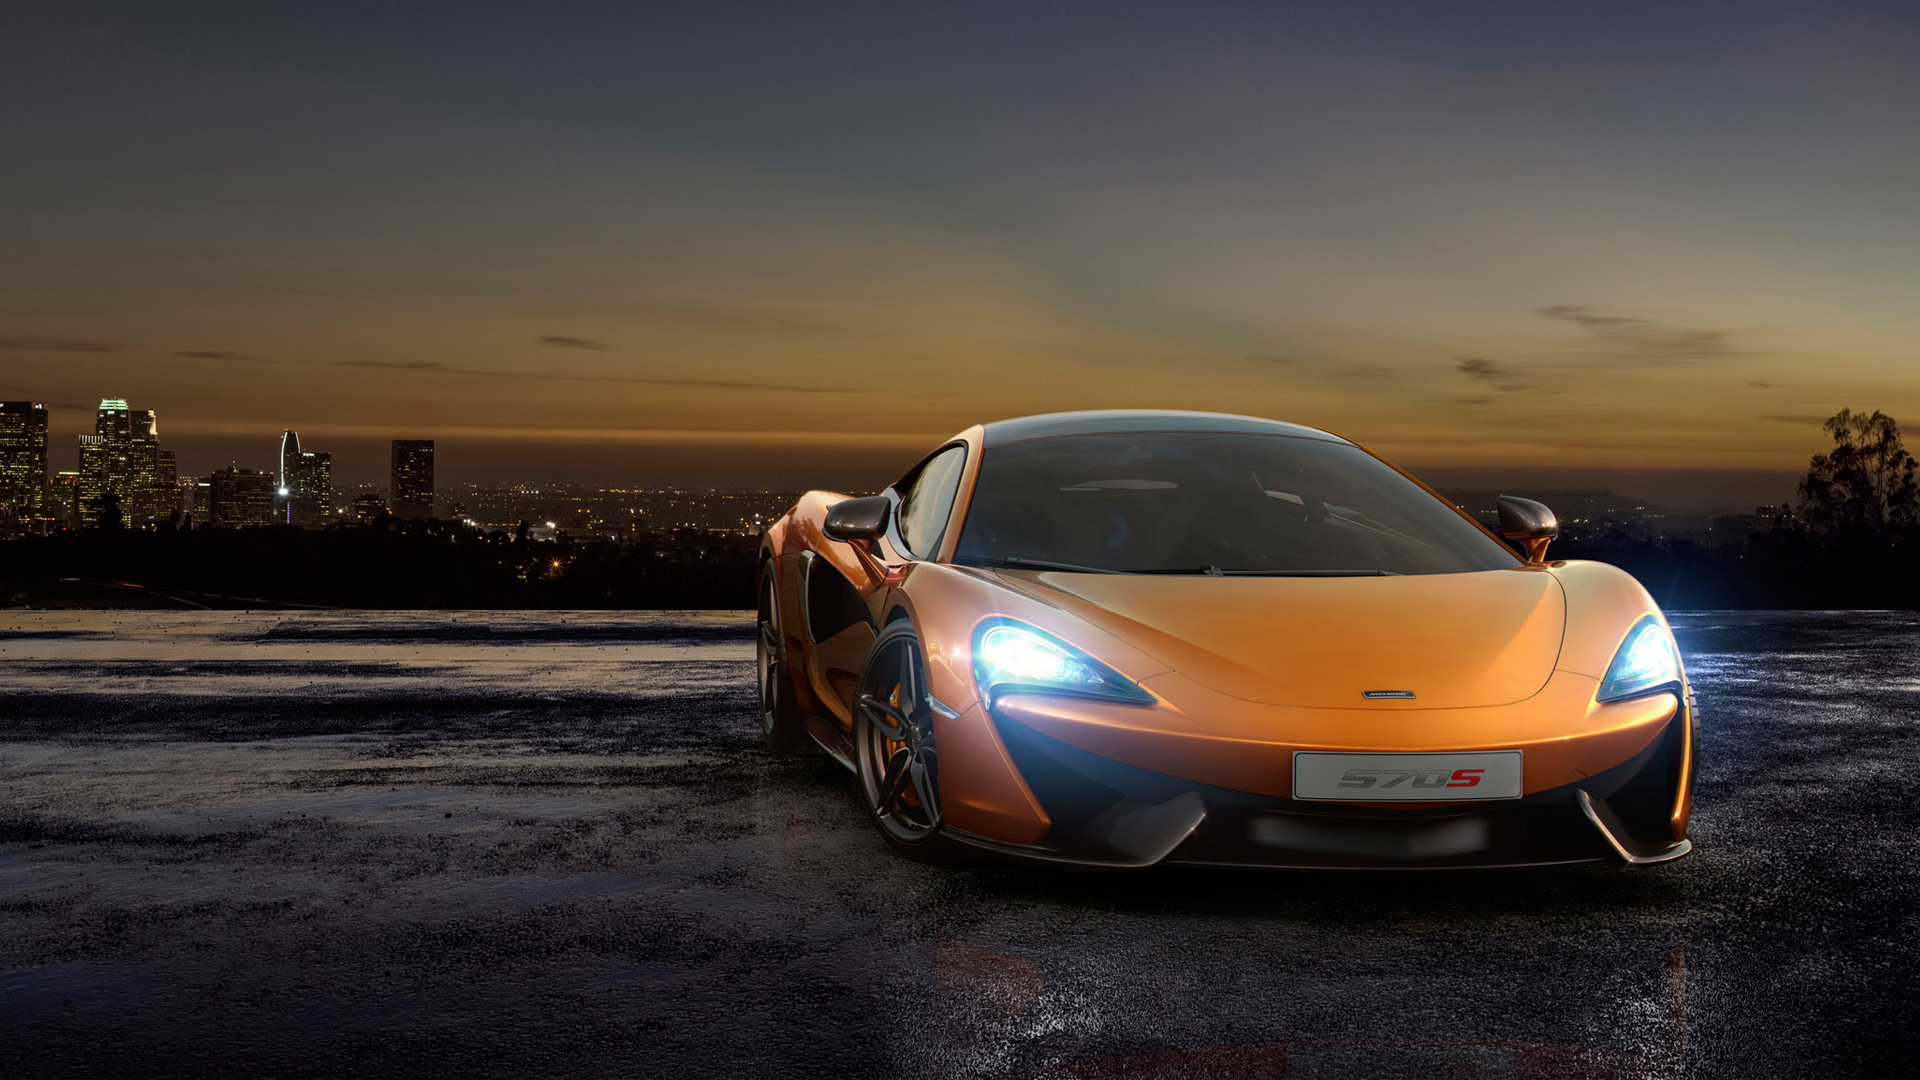 2016 Mclaren 570s Coupe 3 Wallpaper Hd Car Wallpapers